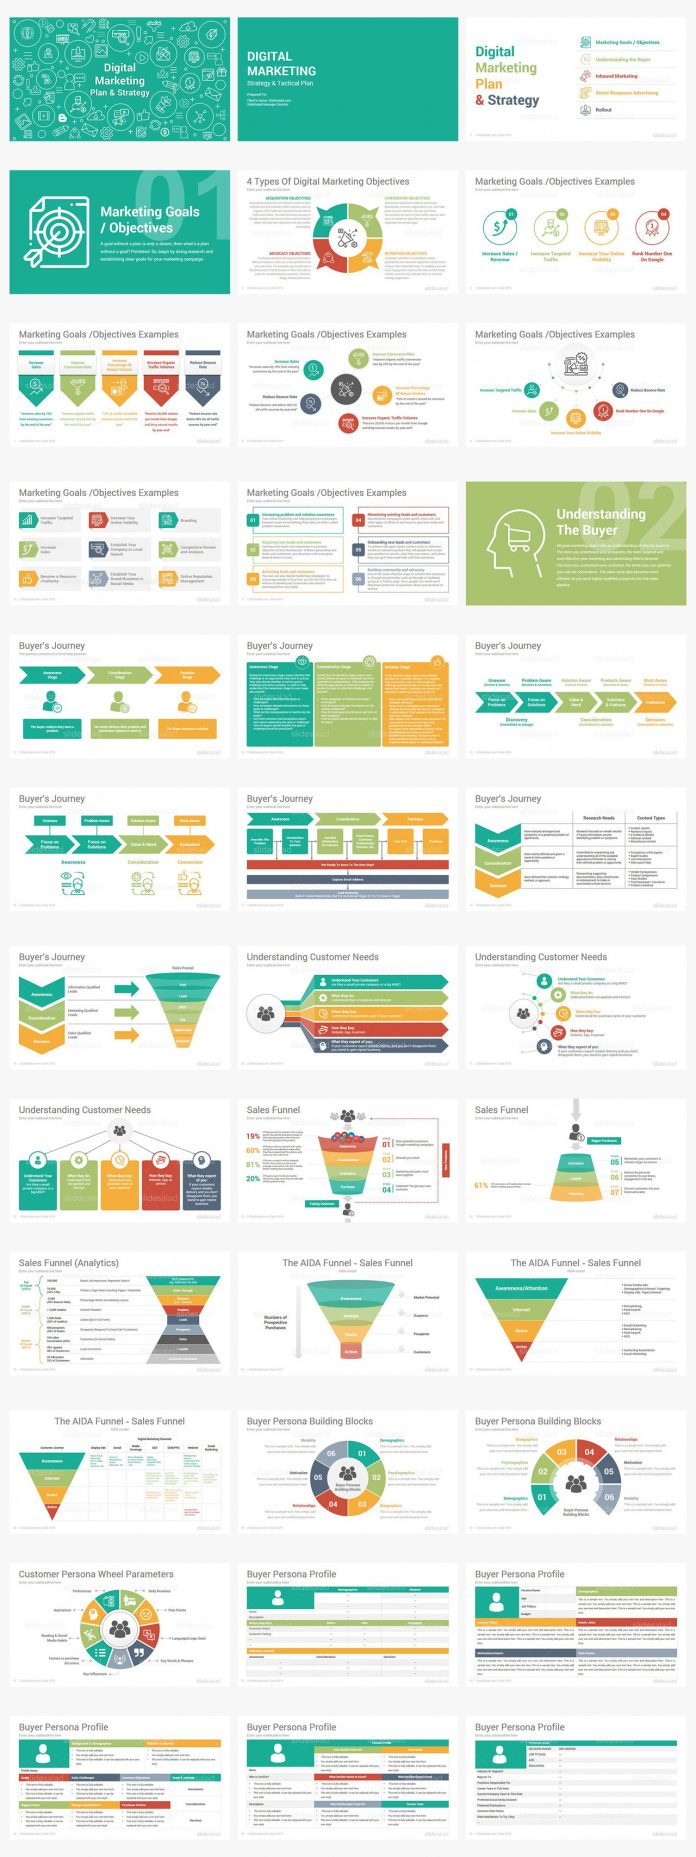 Digital Marketing Powerpoint templates by SlideSalad